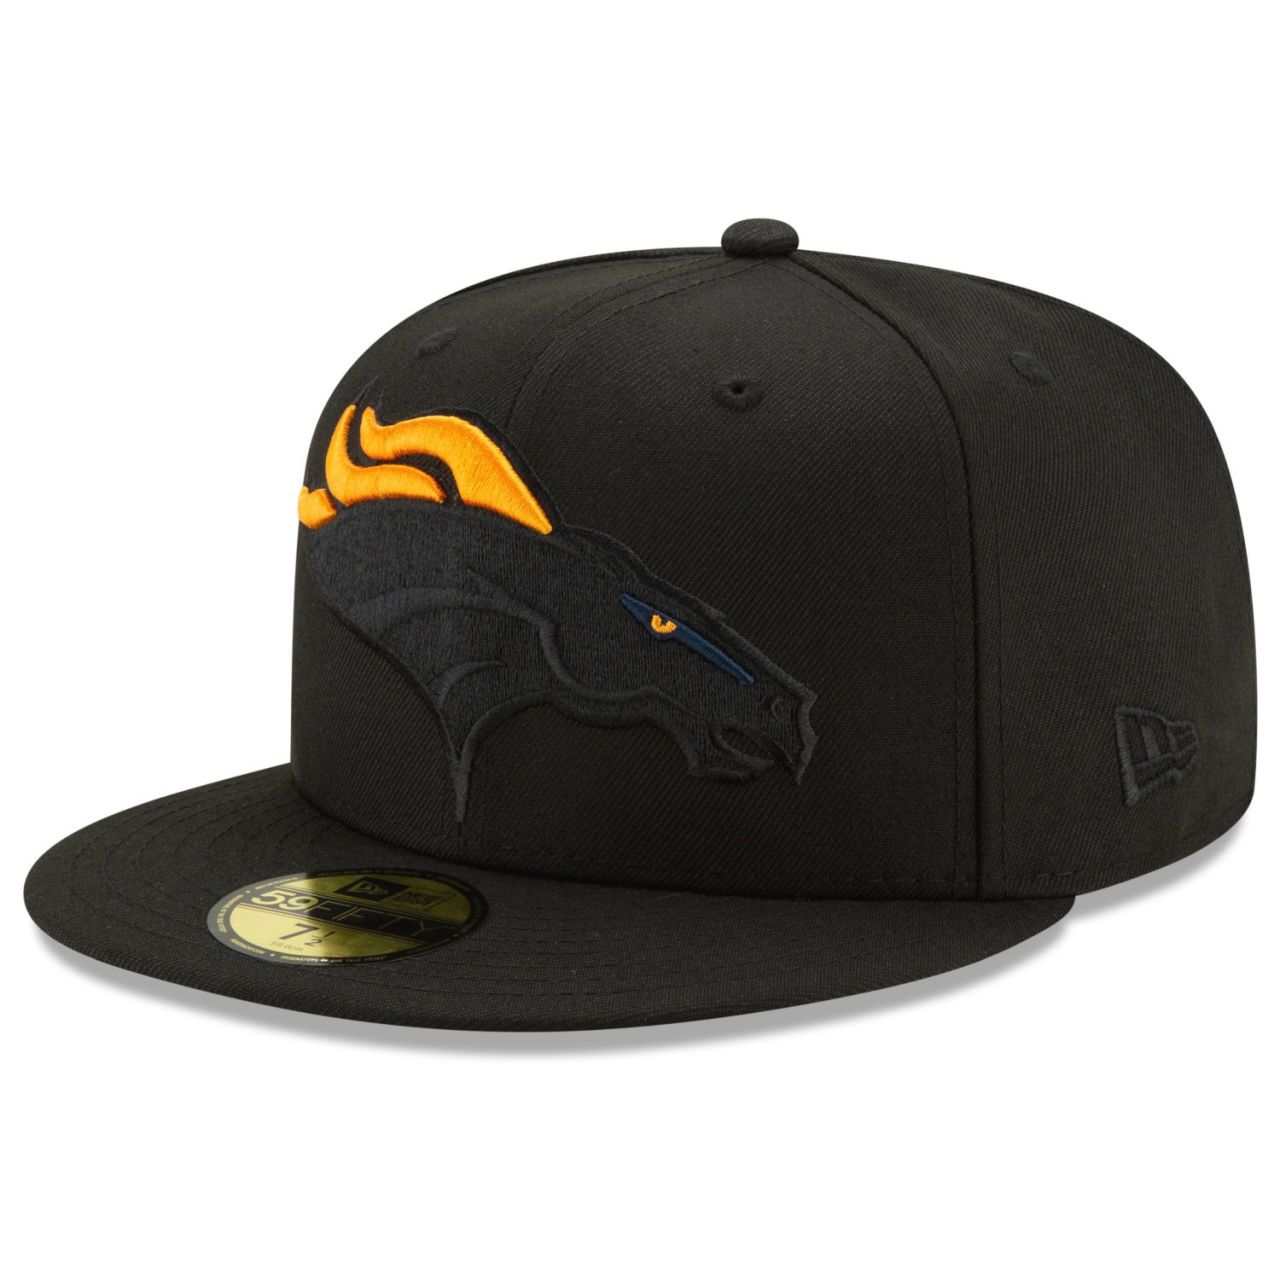 amfoo - New Era 59Fifty Fitted Cap - ELEMENTS Denver Broncos